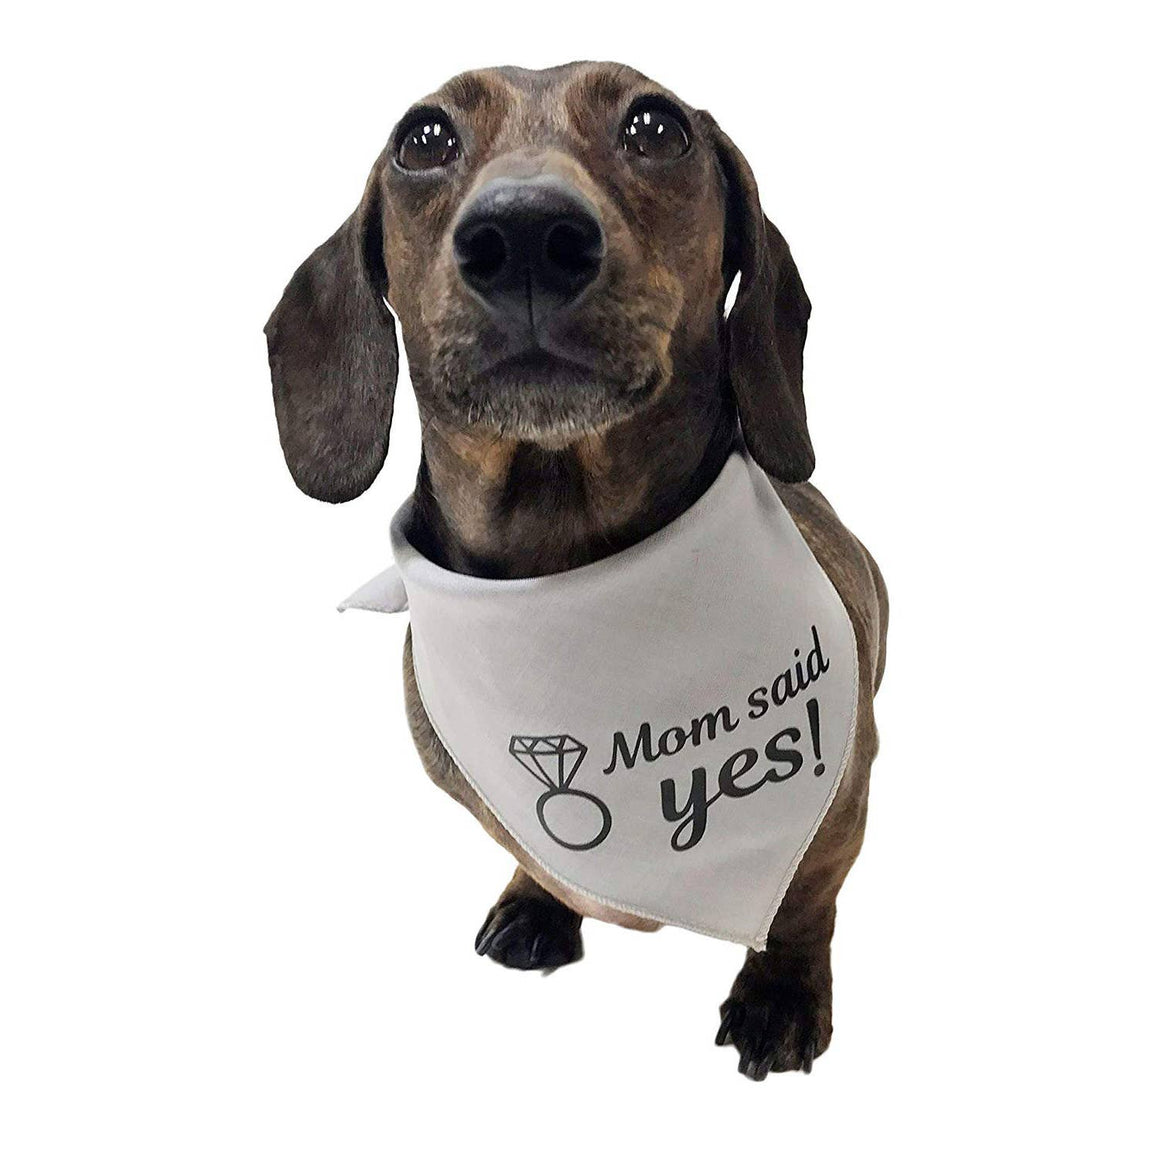 Midlee Mom Said Yes Dog Bandana Engagement Announcement - Large